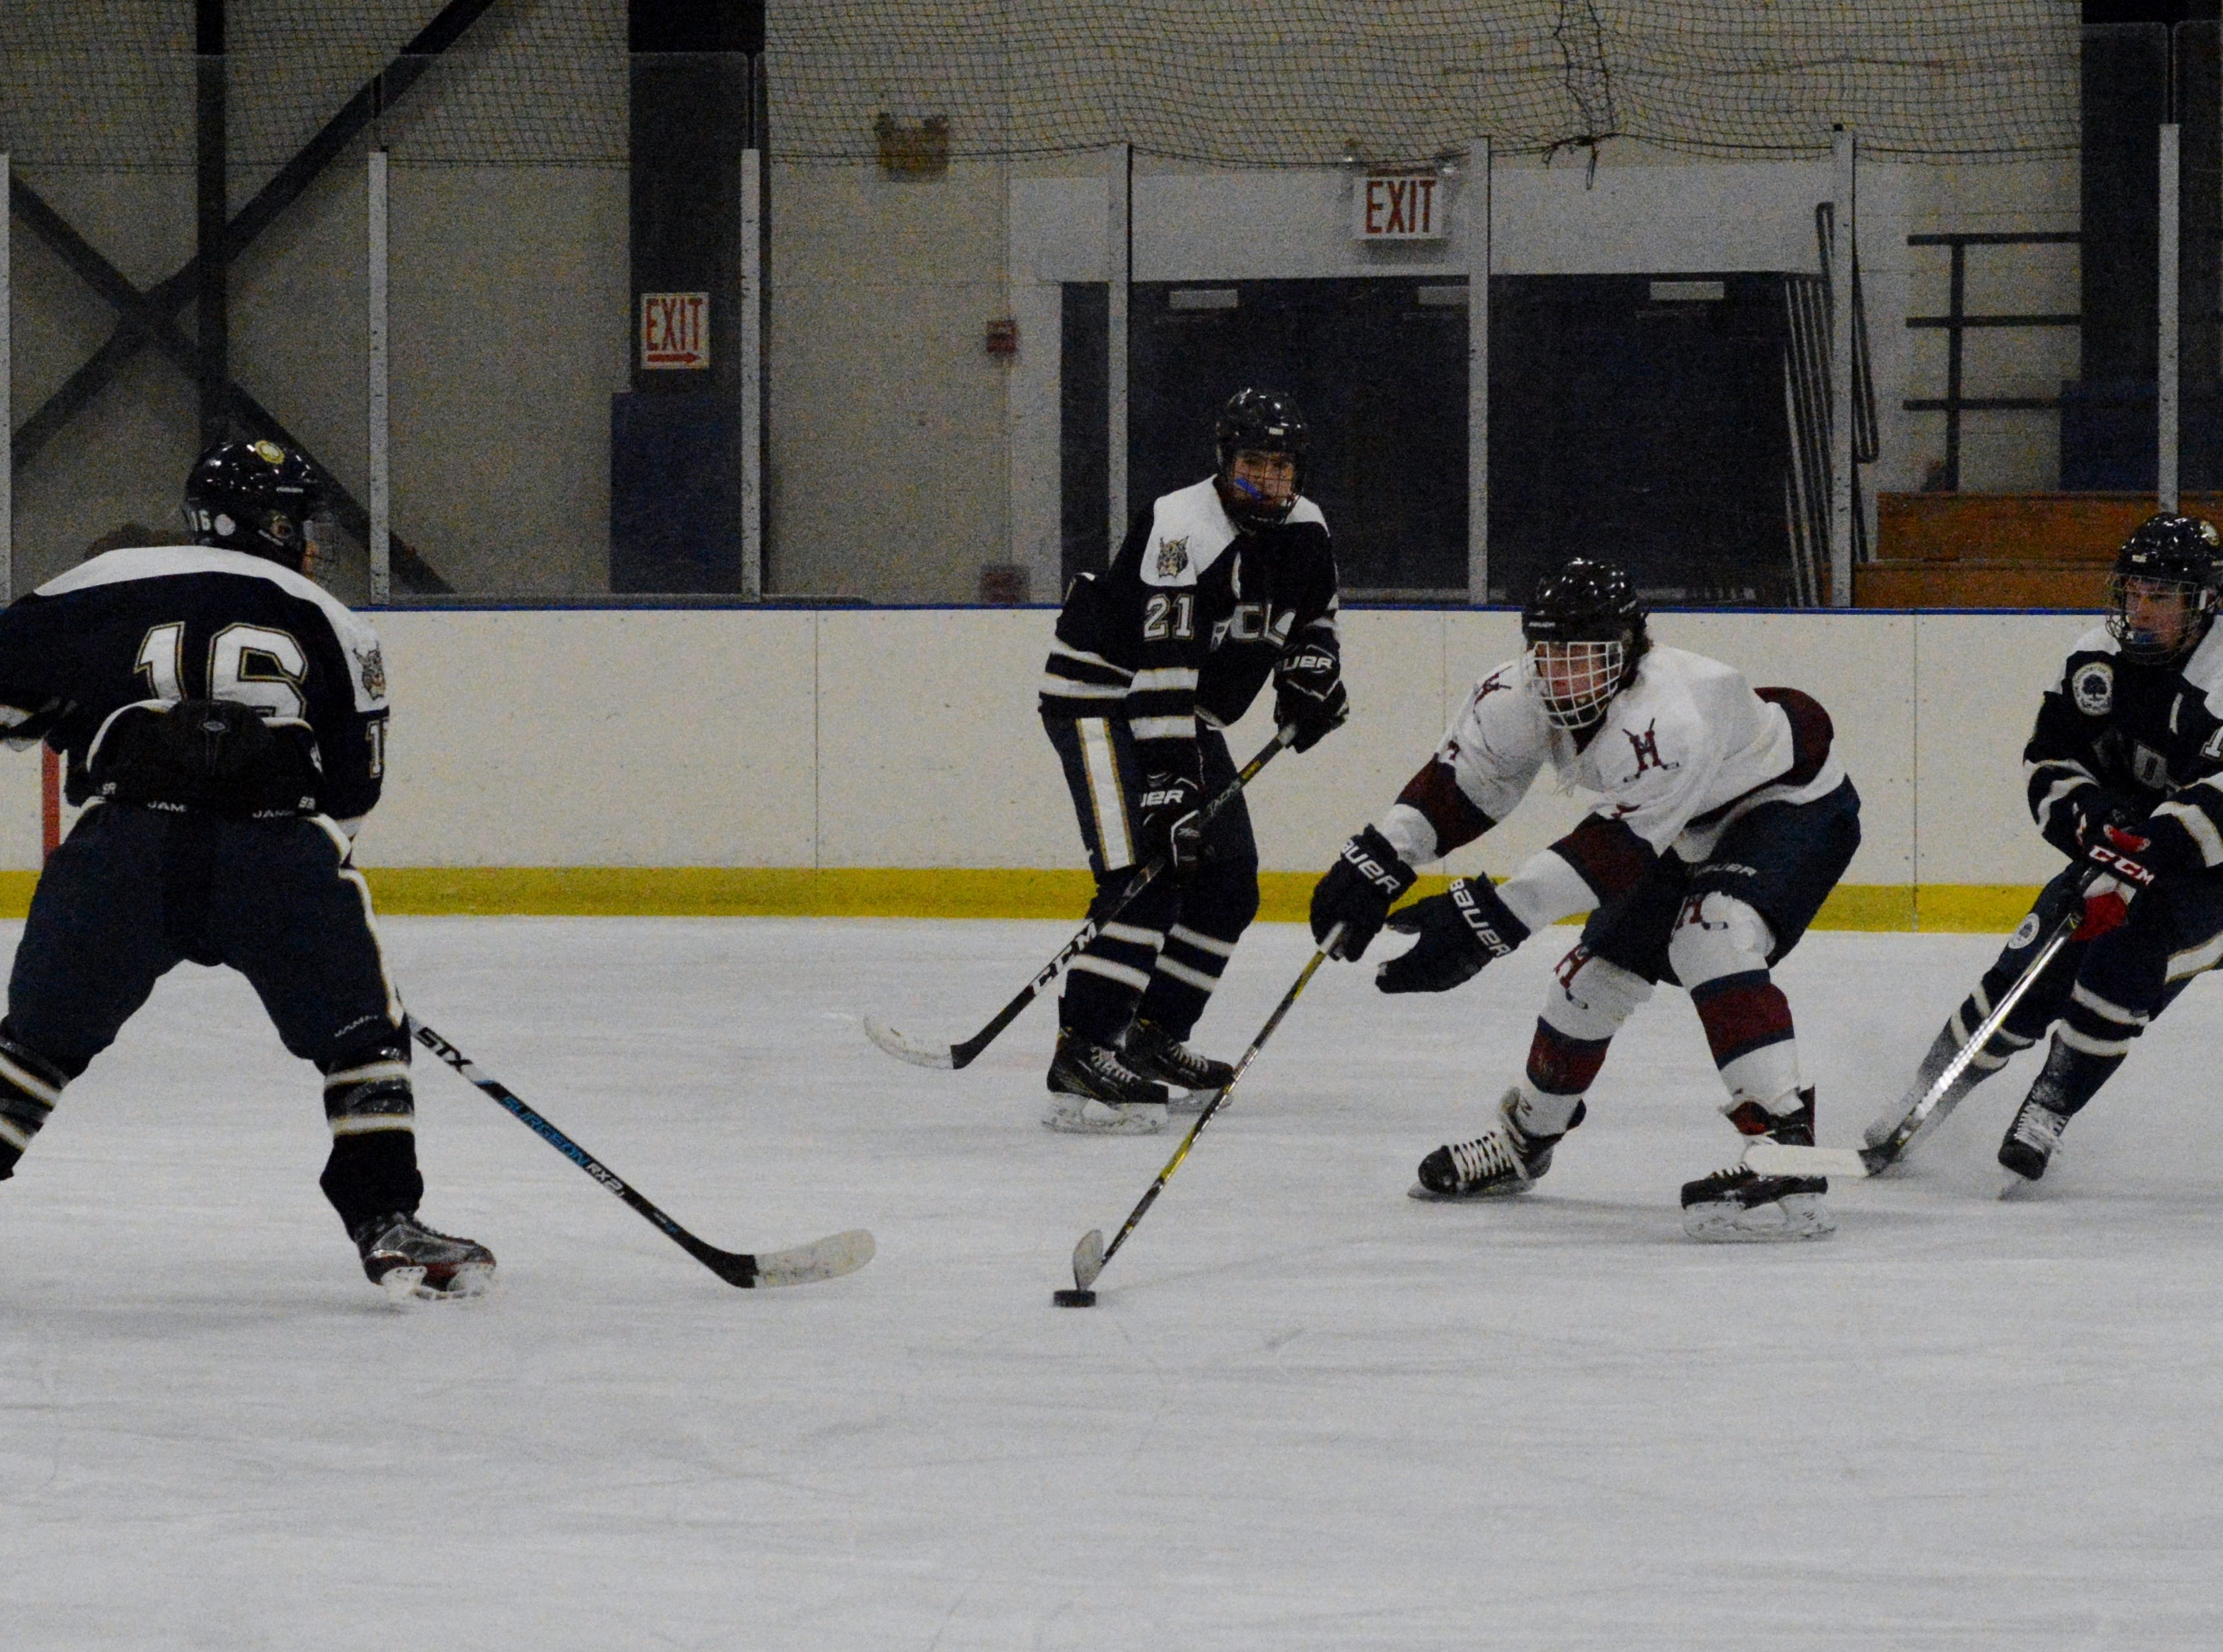 James Mettler reaches to regain control of the puck during the first period on Wednesday.